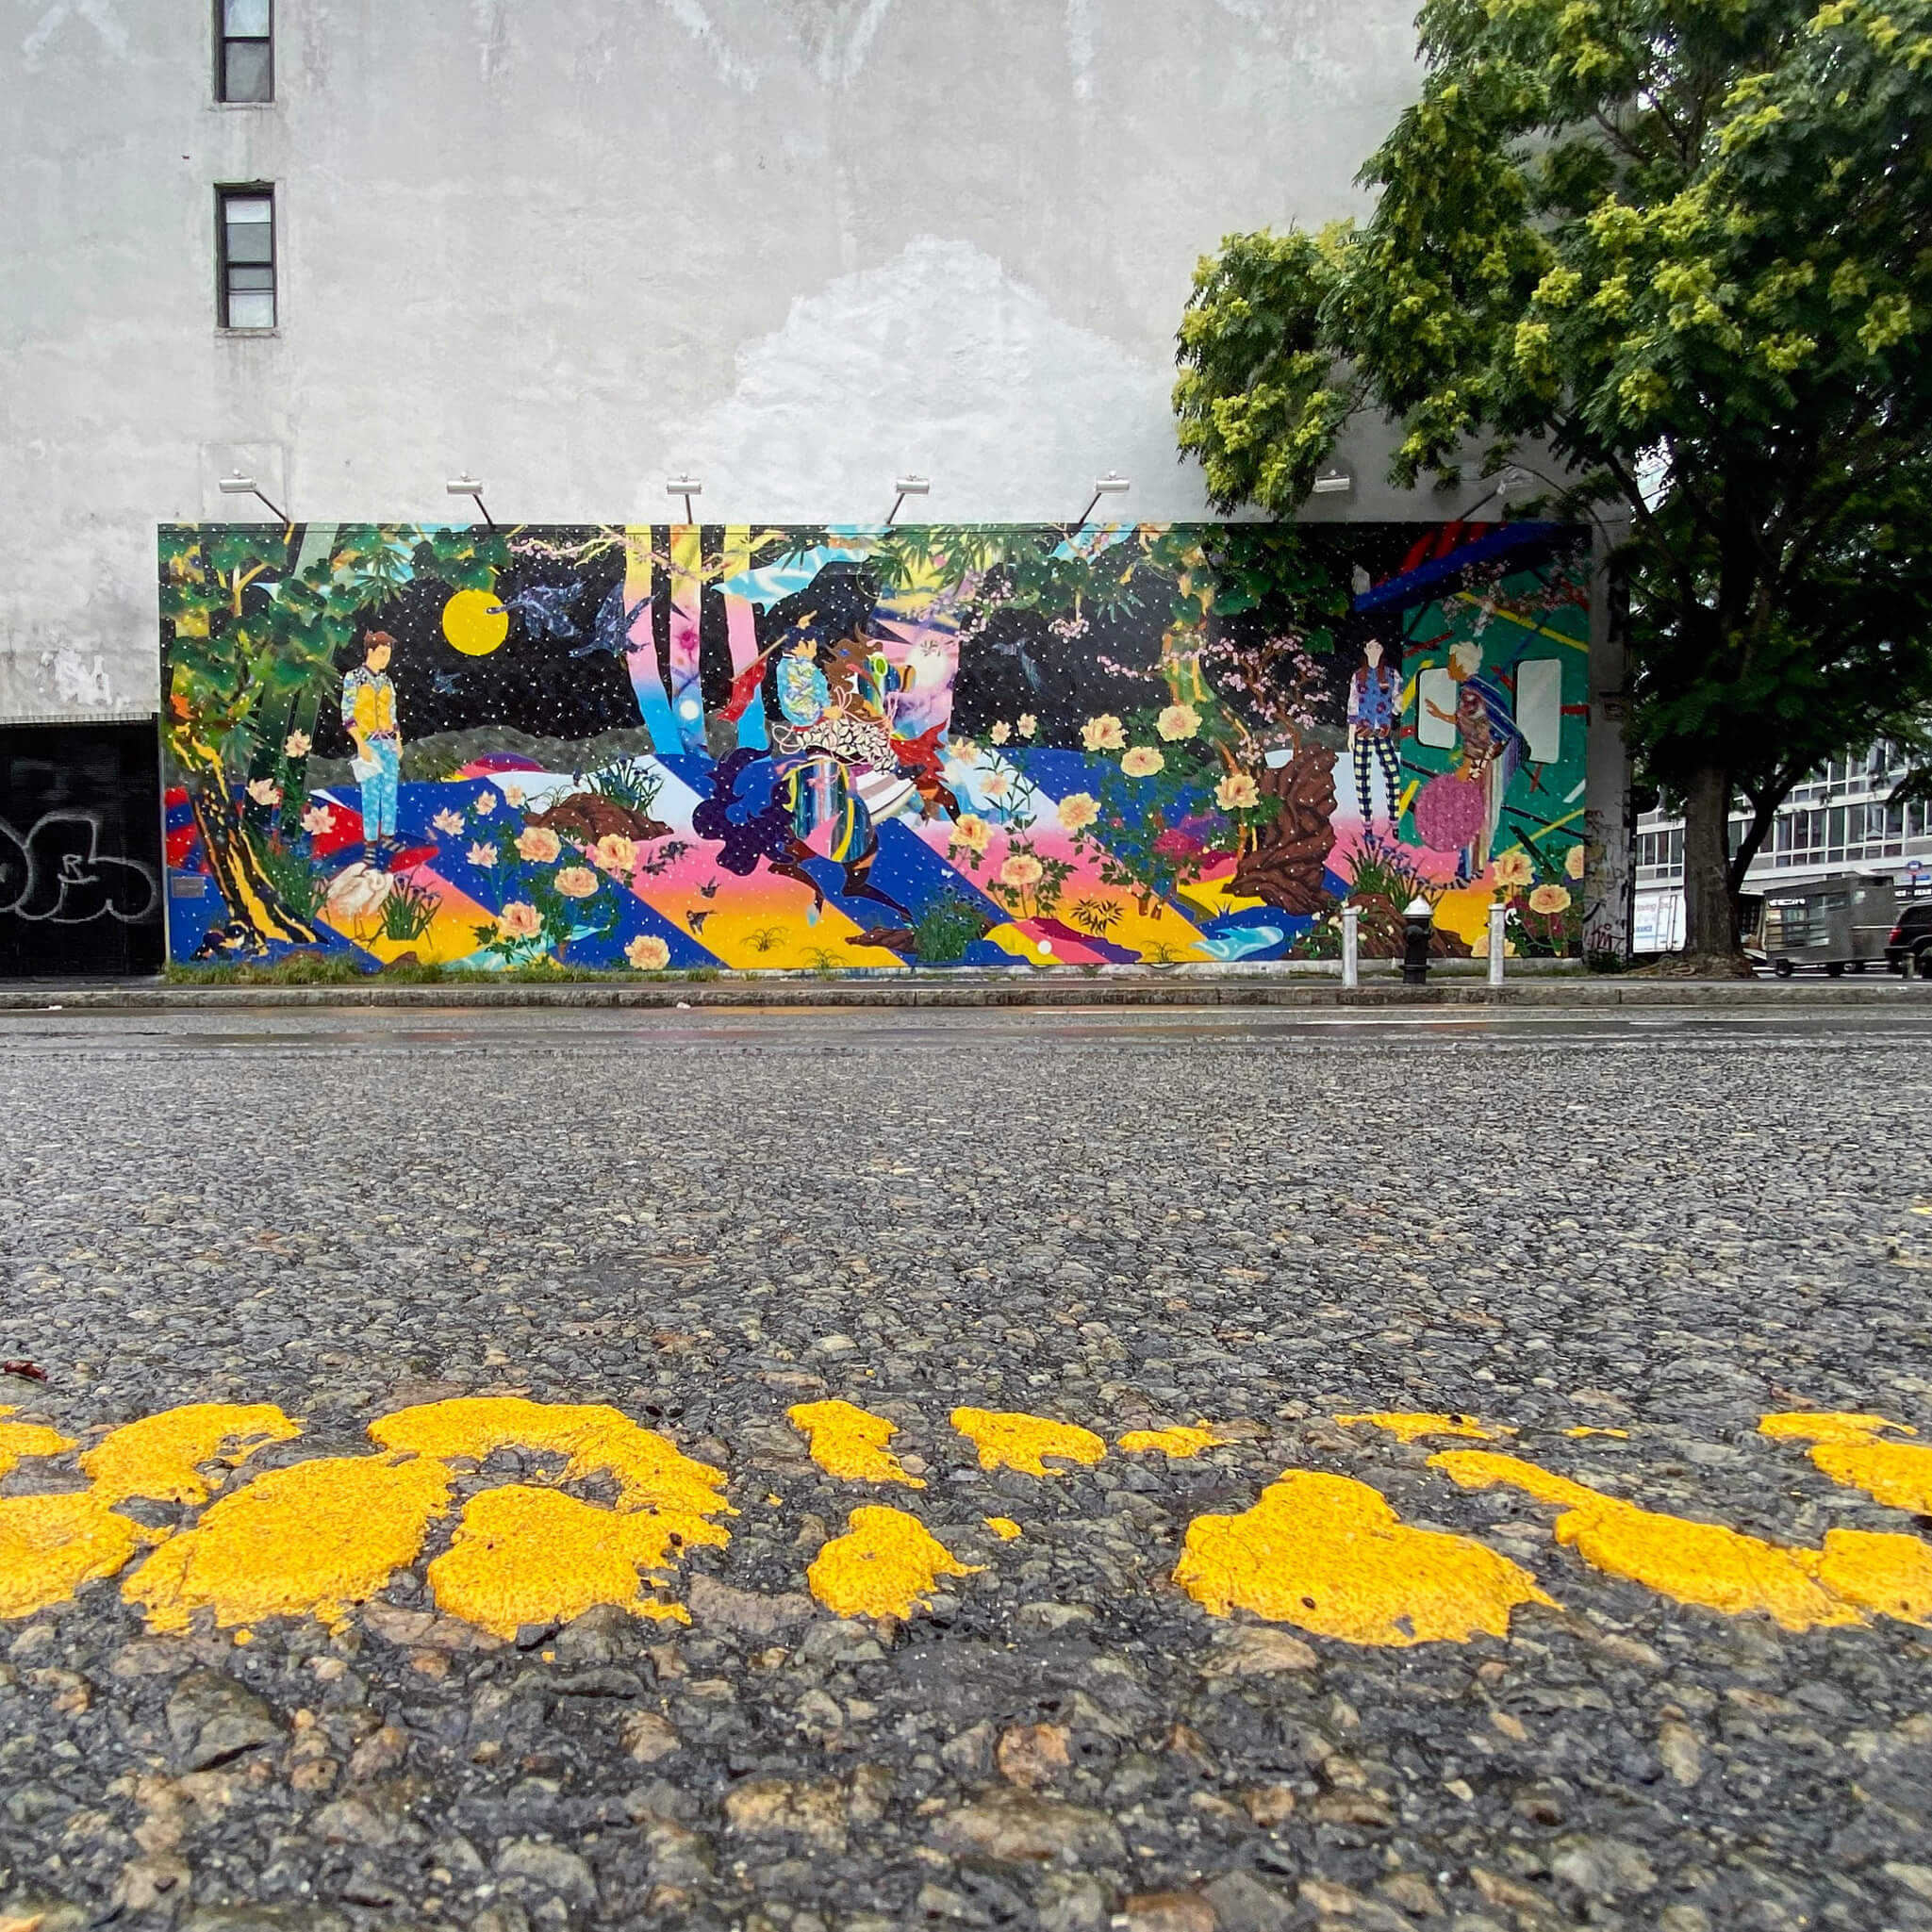 Colourful Street Art Photography by Sarah Sansom - Worn yellow writing on pavement reflects flowers in street art pic